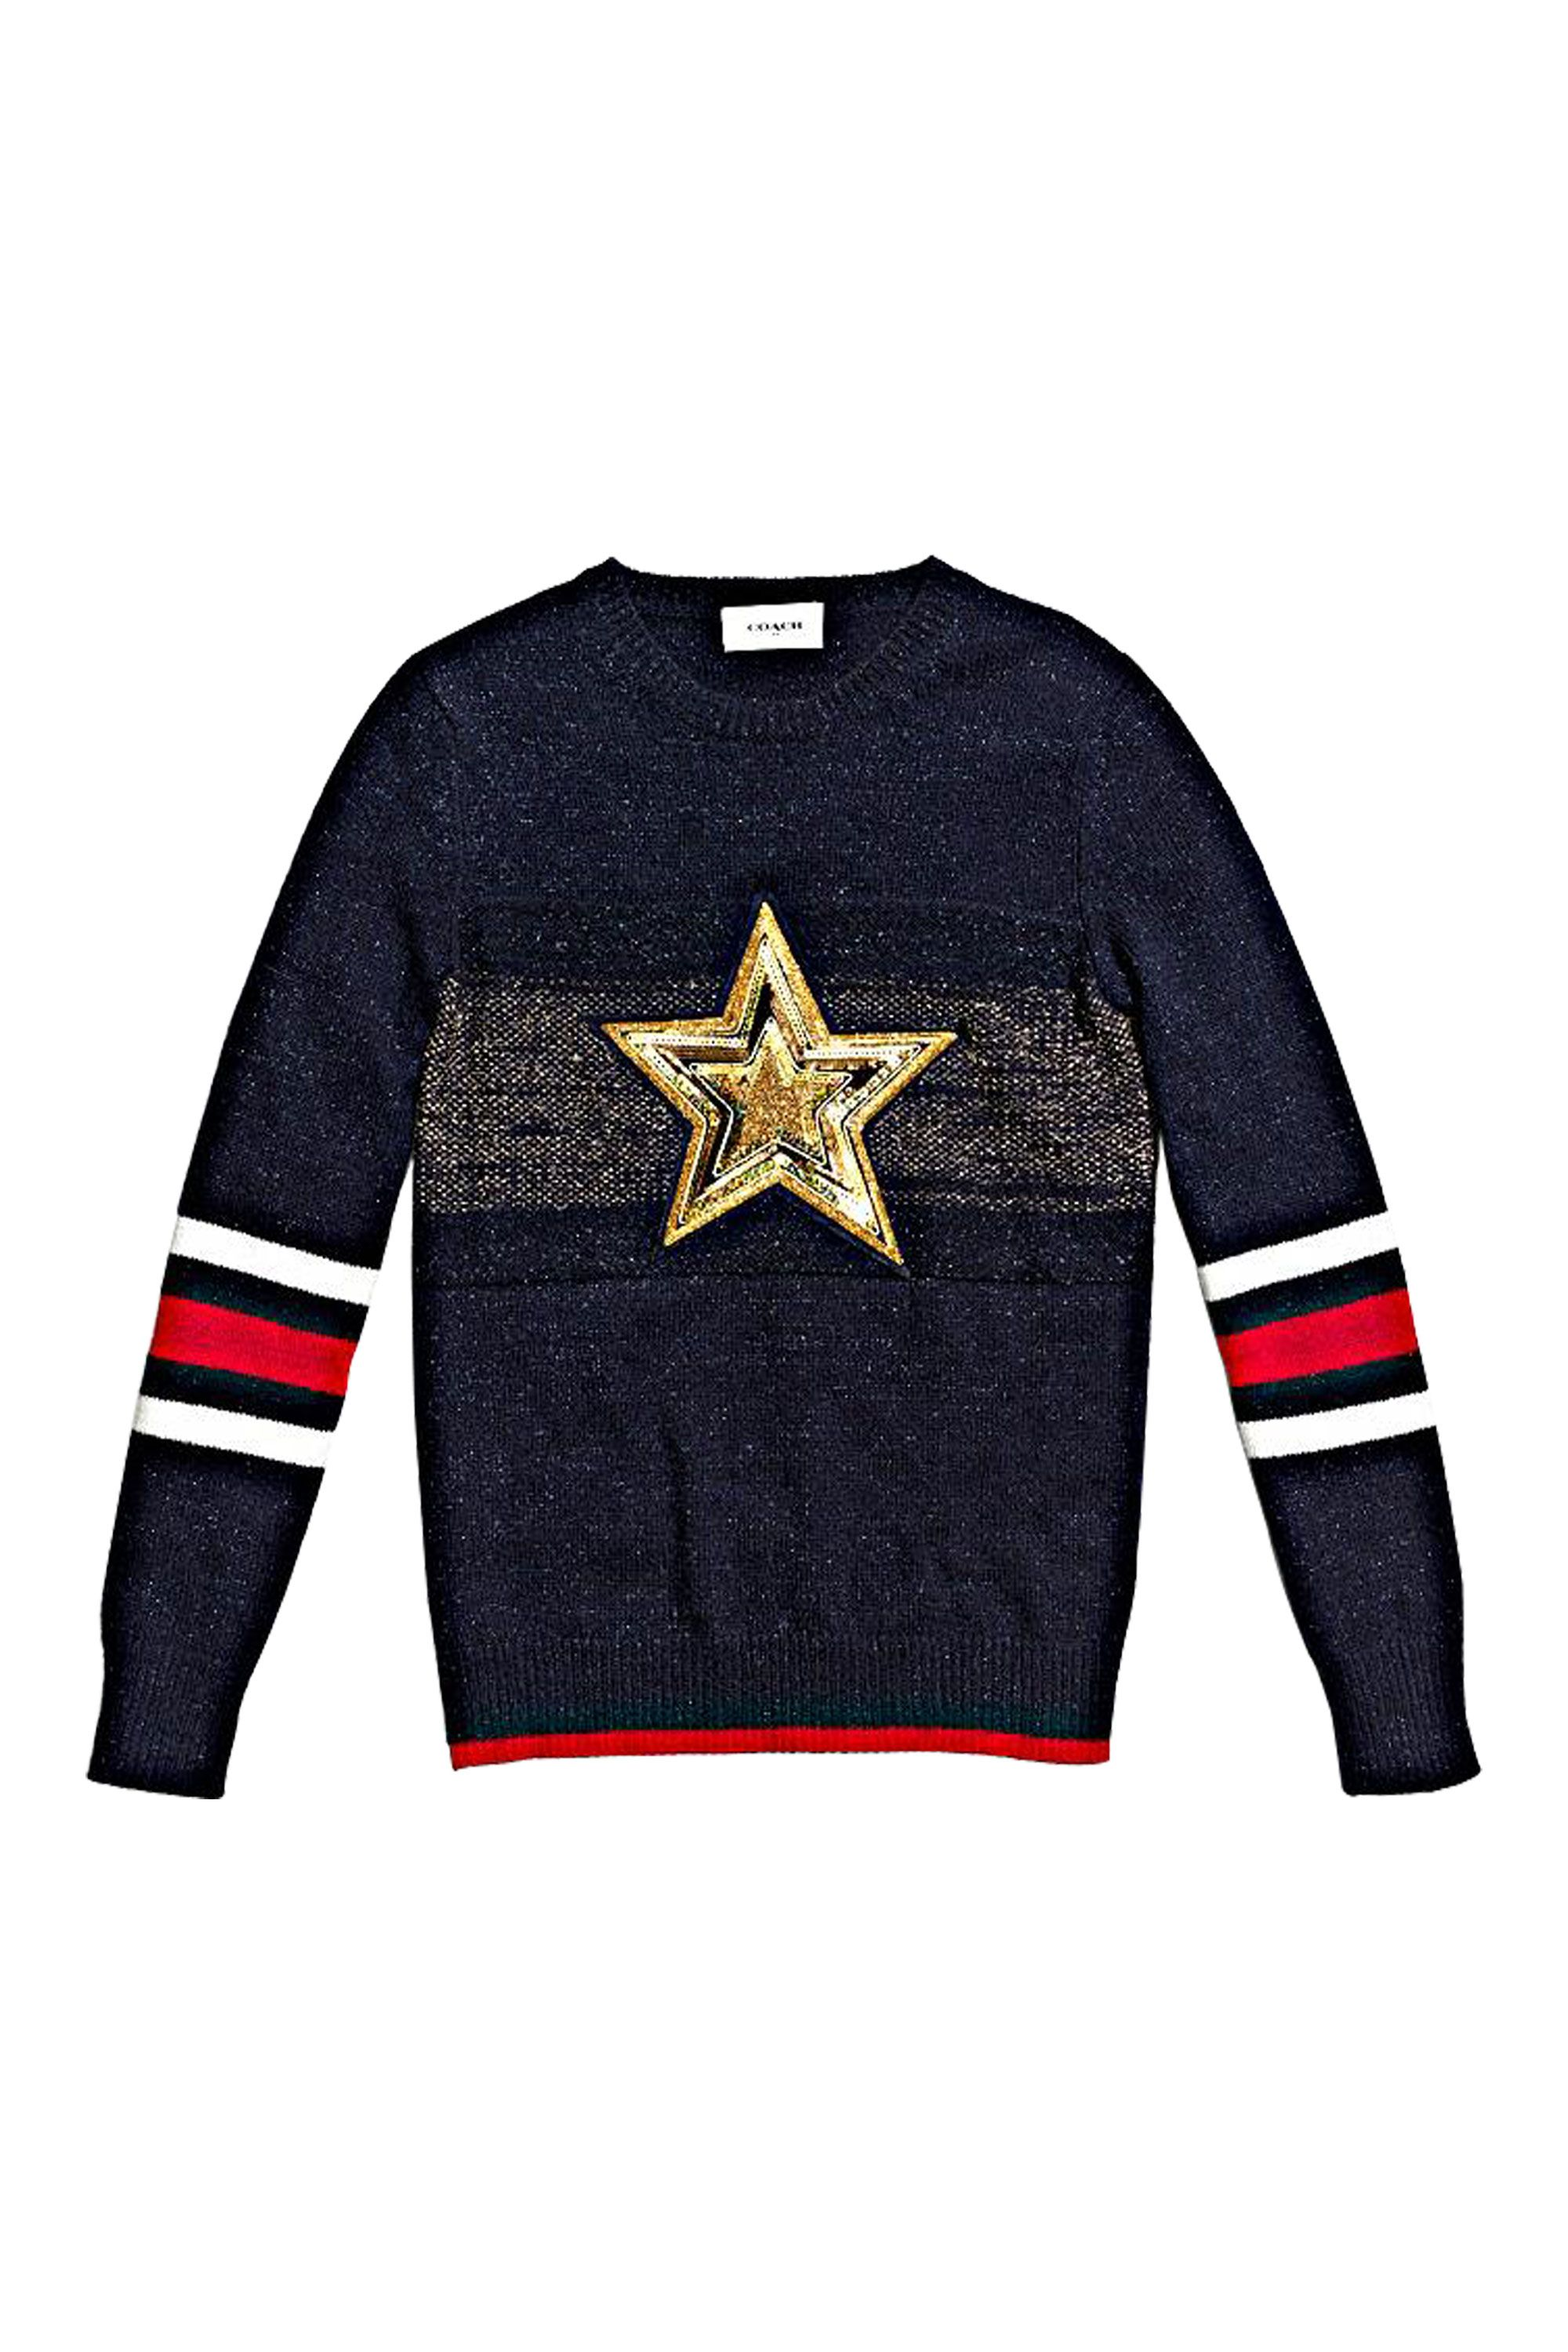 "<p>Collegiate-inspired fashion at its most optimistic, this wear-with-everything sweater works with jeans or a tailored skirt. If you never missed a pep rally, this knit's for you.</p><p><em data-redactor-tag=""em"">Coach 1941 Wool Glitter Star Crewneck Sweater, $695, <a rel=""noskim"" href=""http://www.coach.com/coach-designer-tops-wool-glitter-star-crewneck-sweater/56080.html?CID=D_B_ELL_11744"" target=""_blank"">coach.com</a></em></p>"